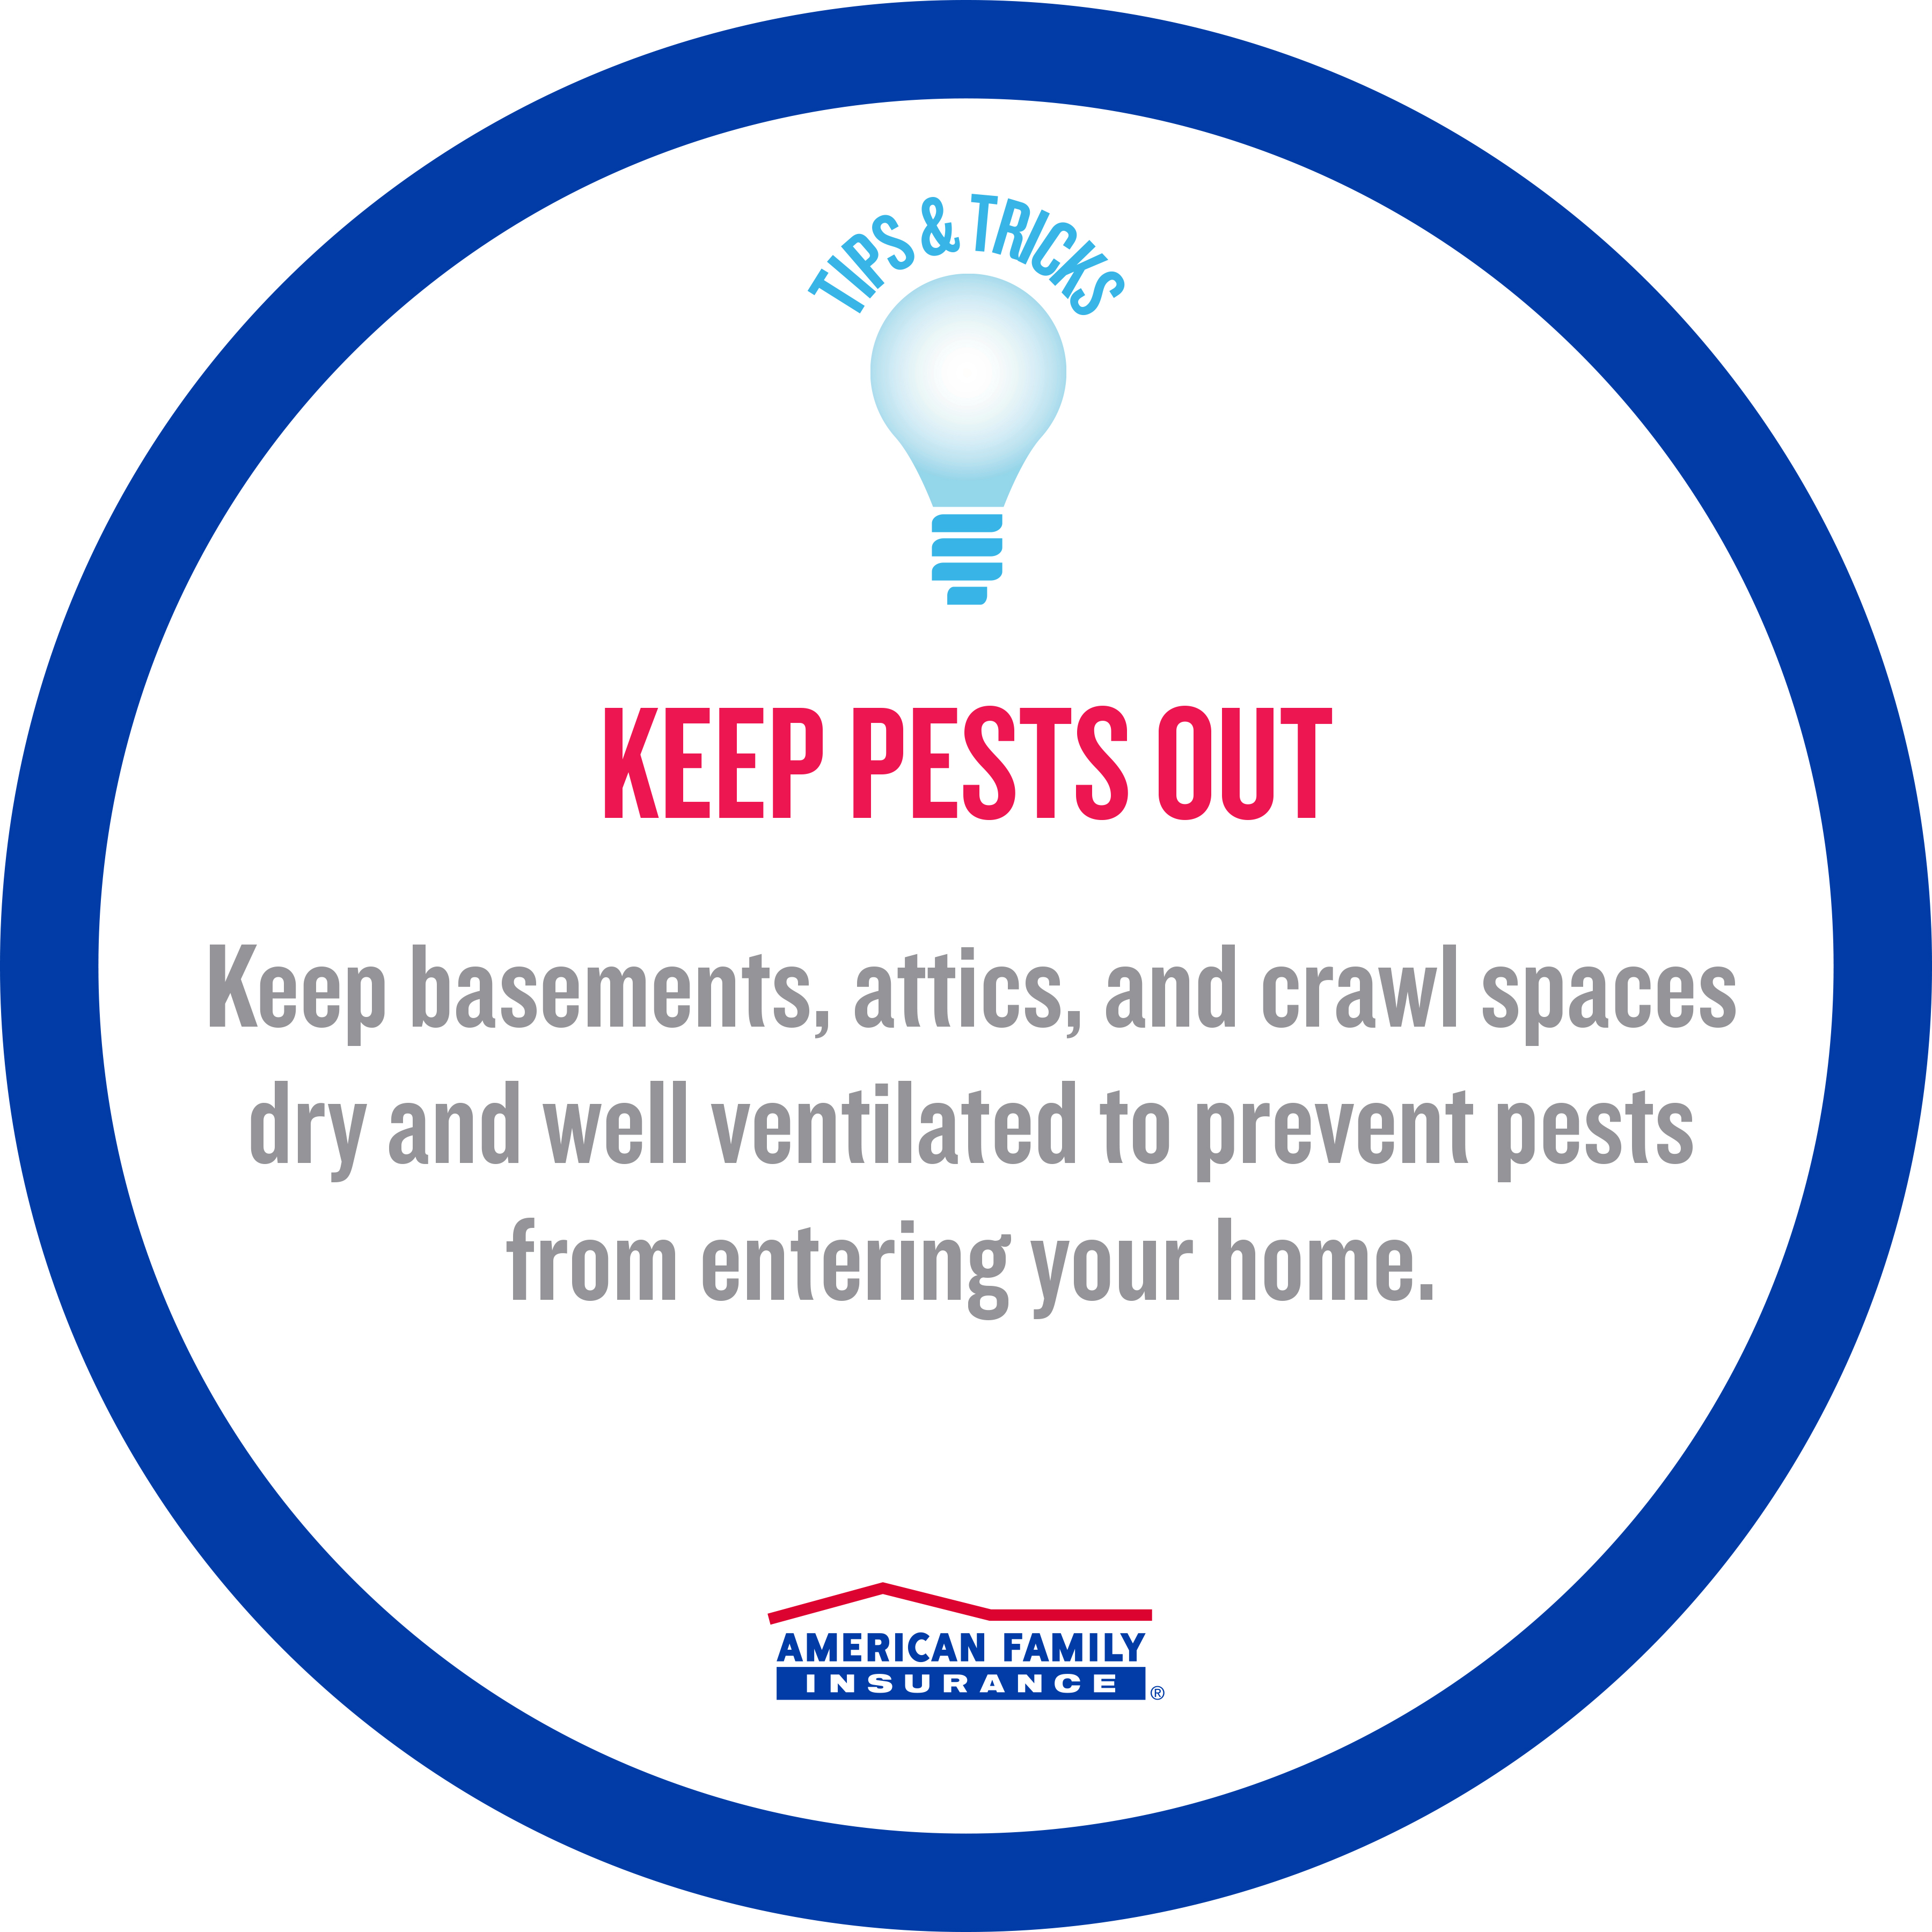 American Family Insurance Tips Trends Keep Pests Out